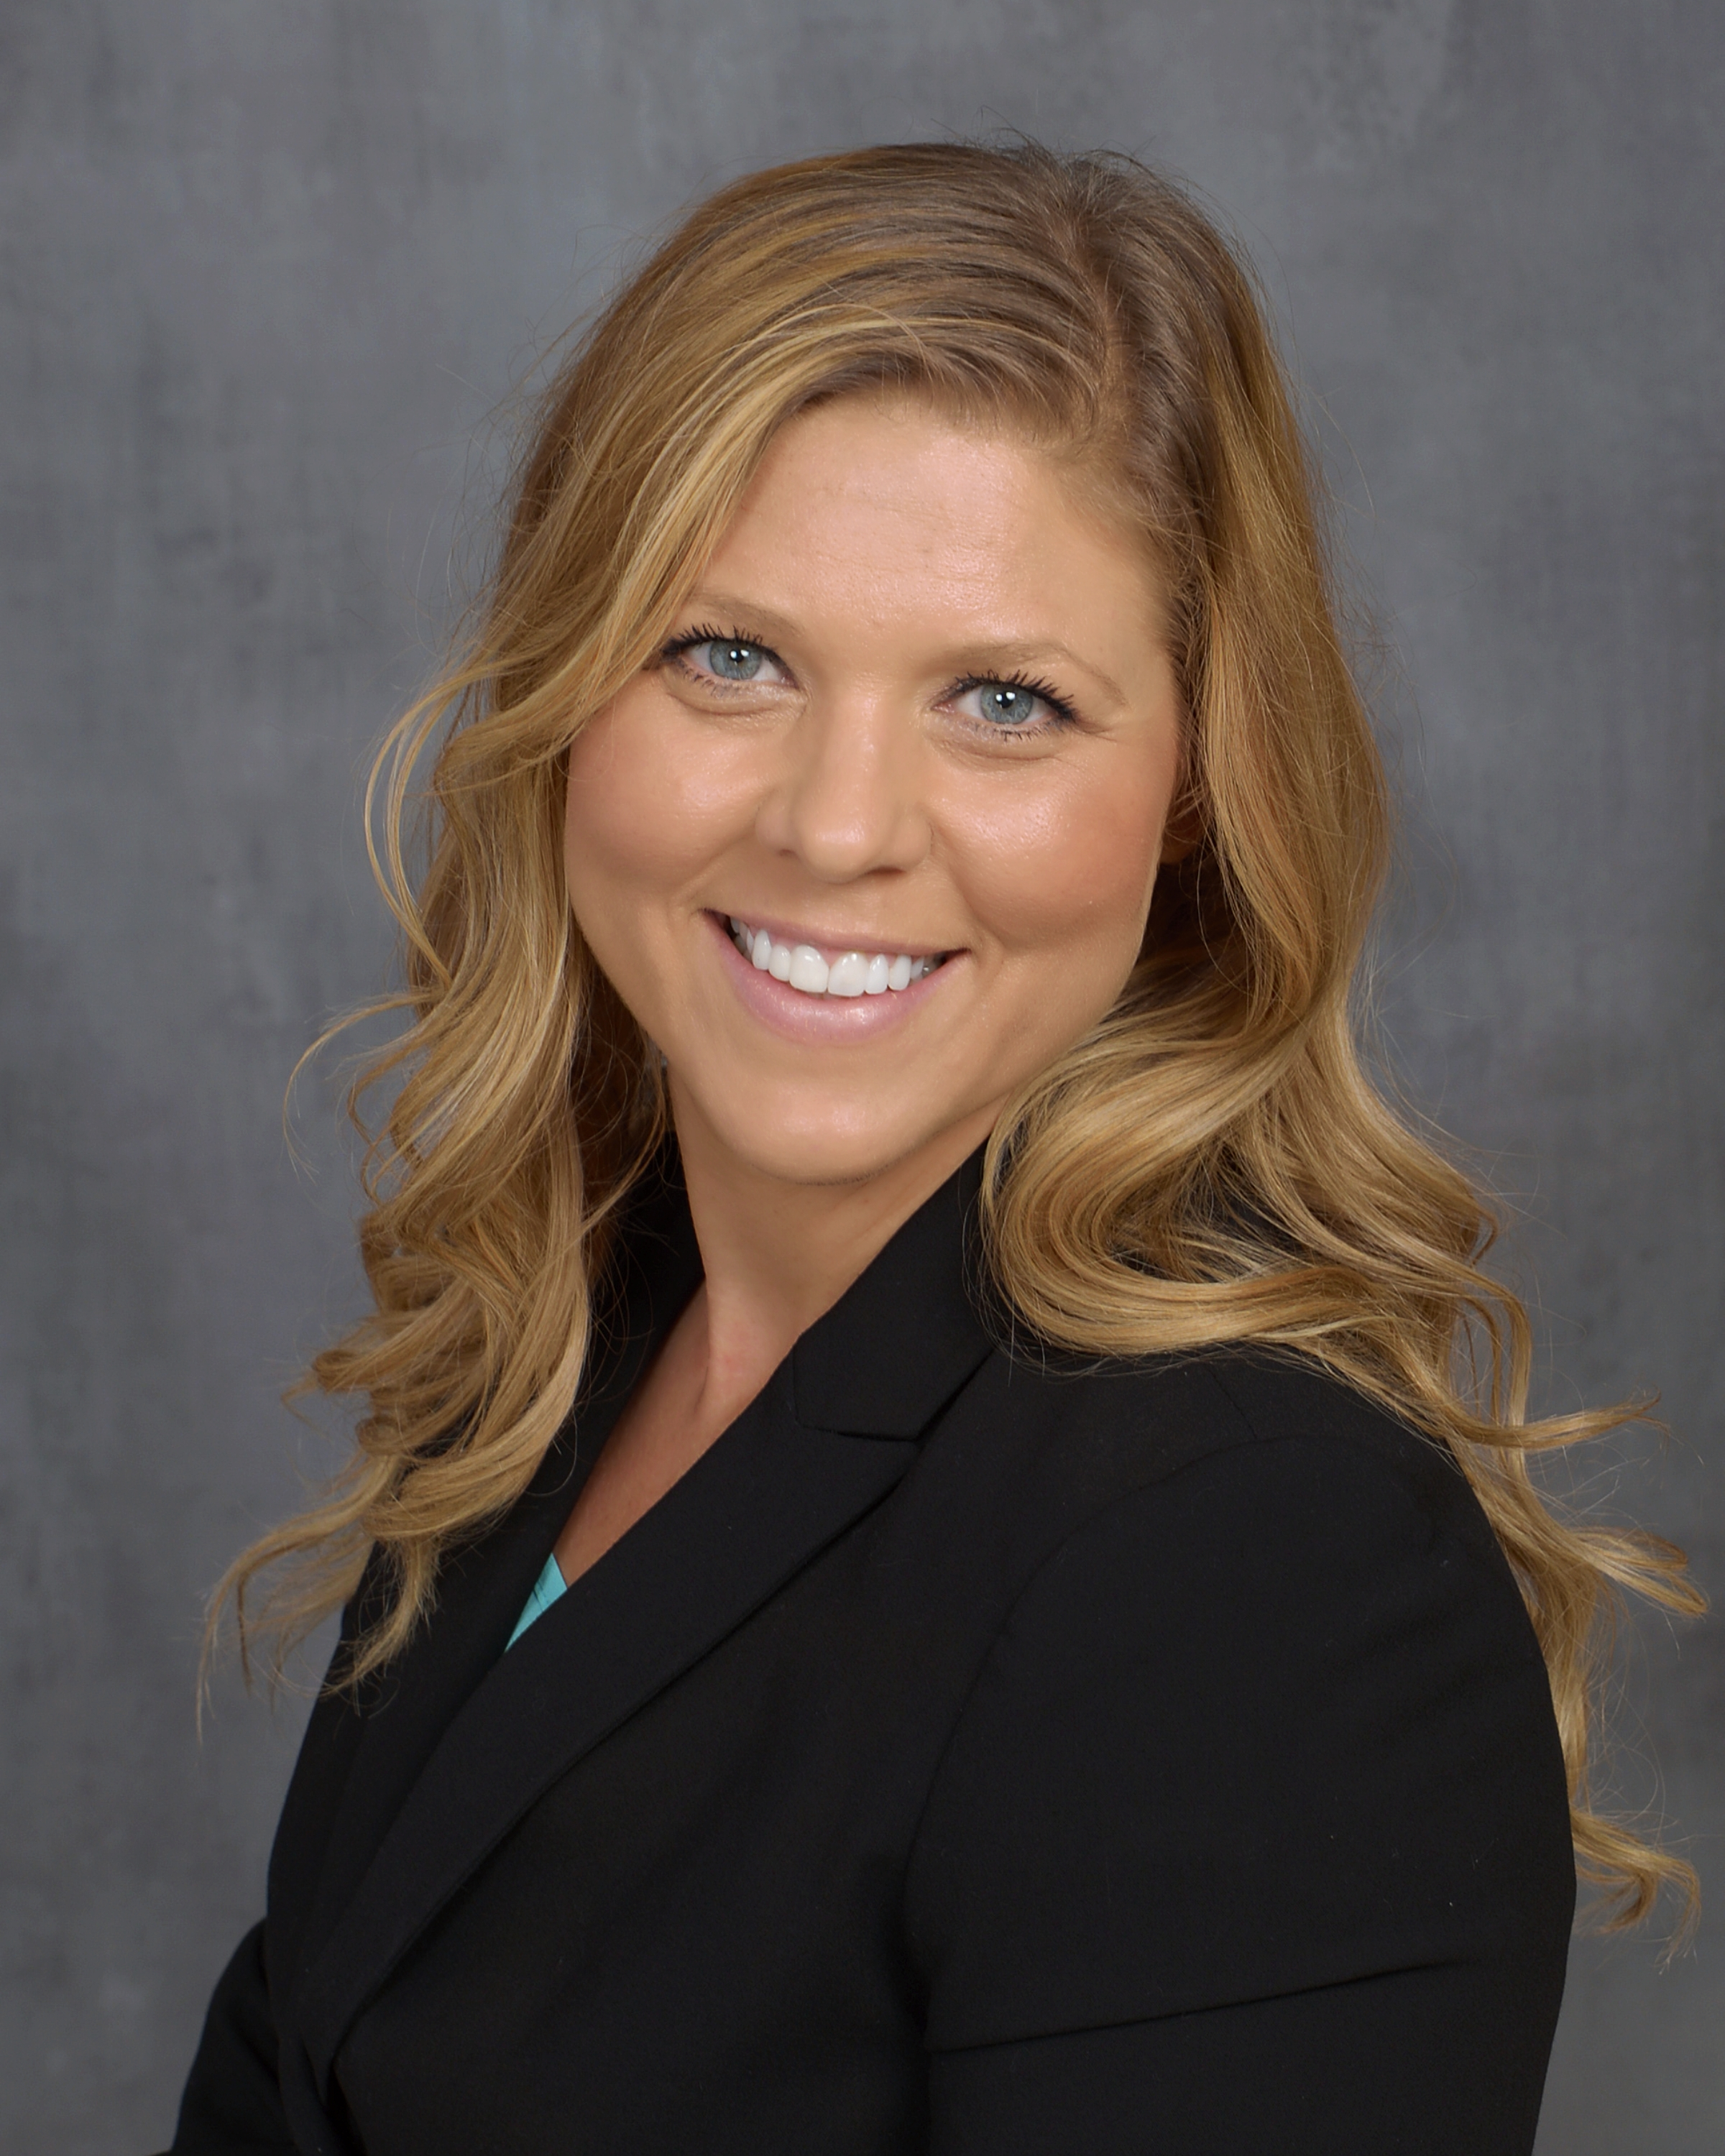 Jessie Lopez, Broker at Eugene Realty Group